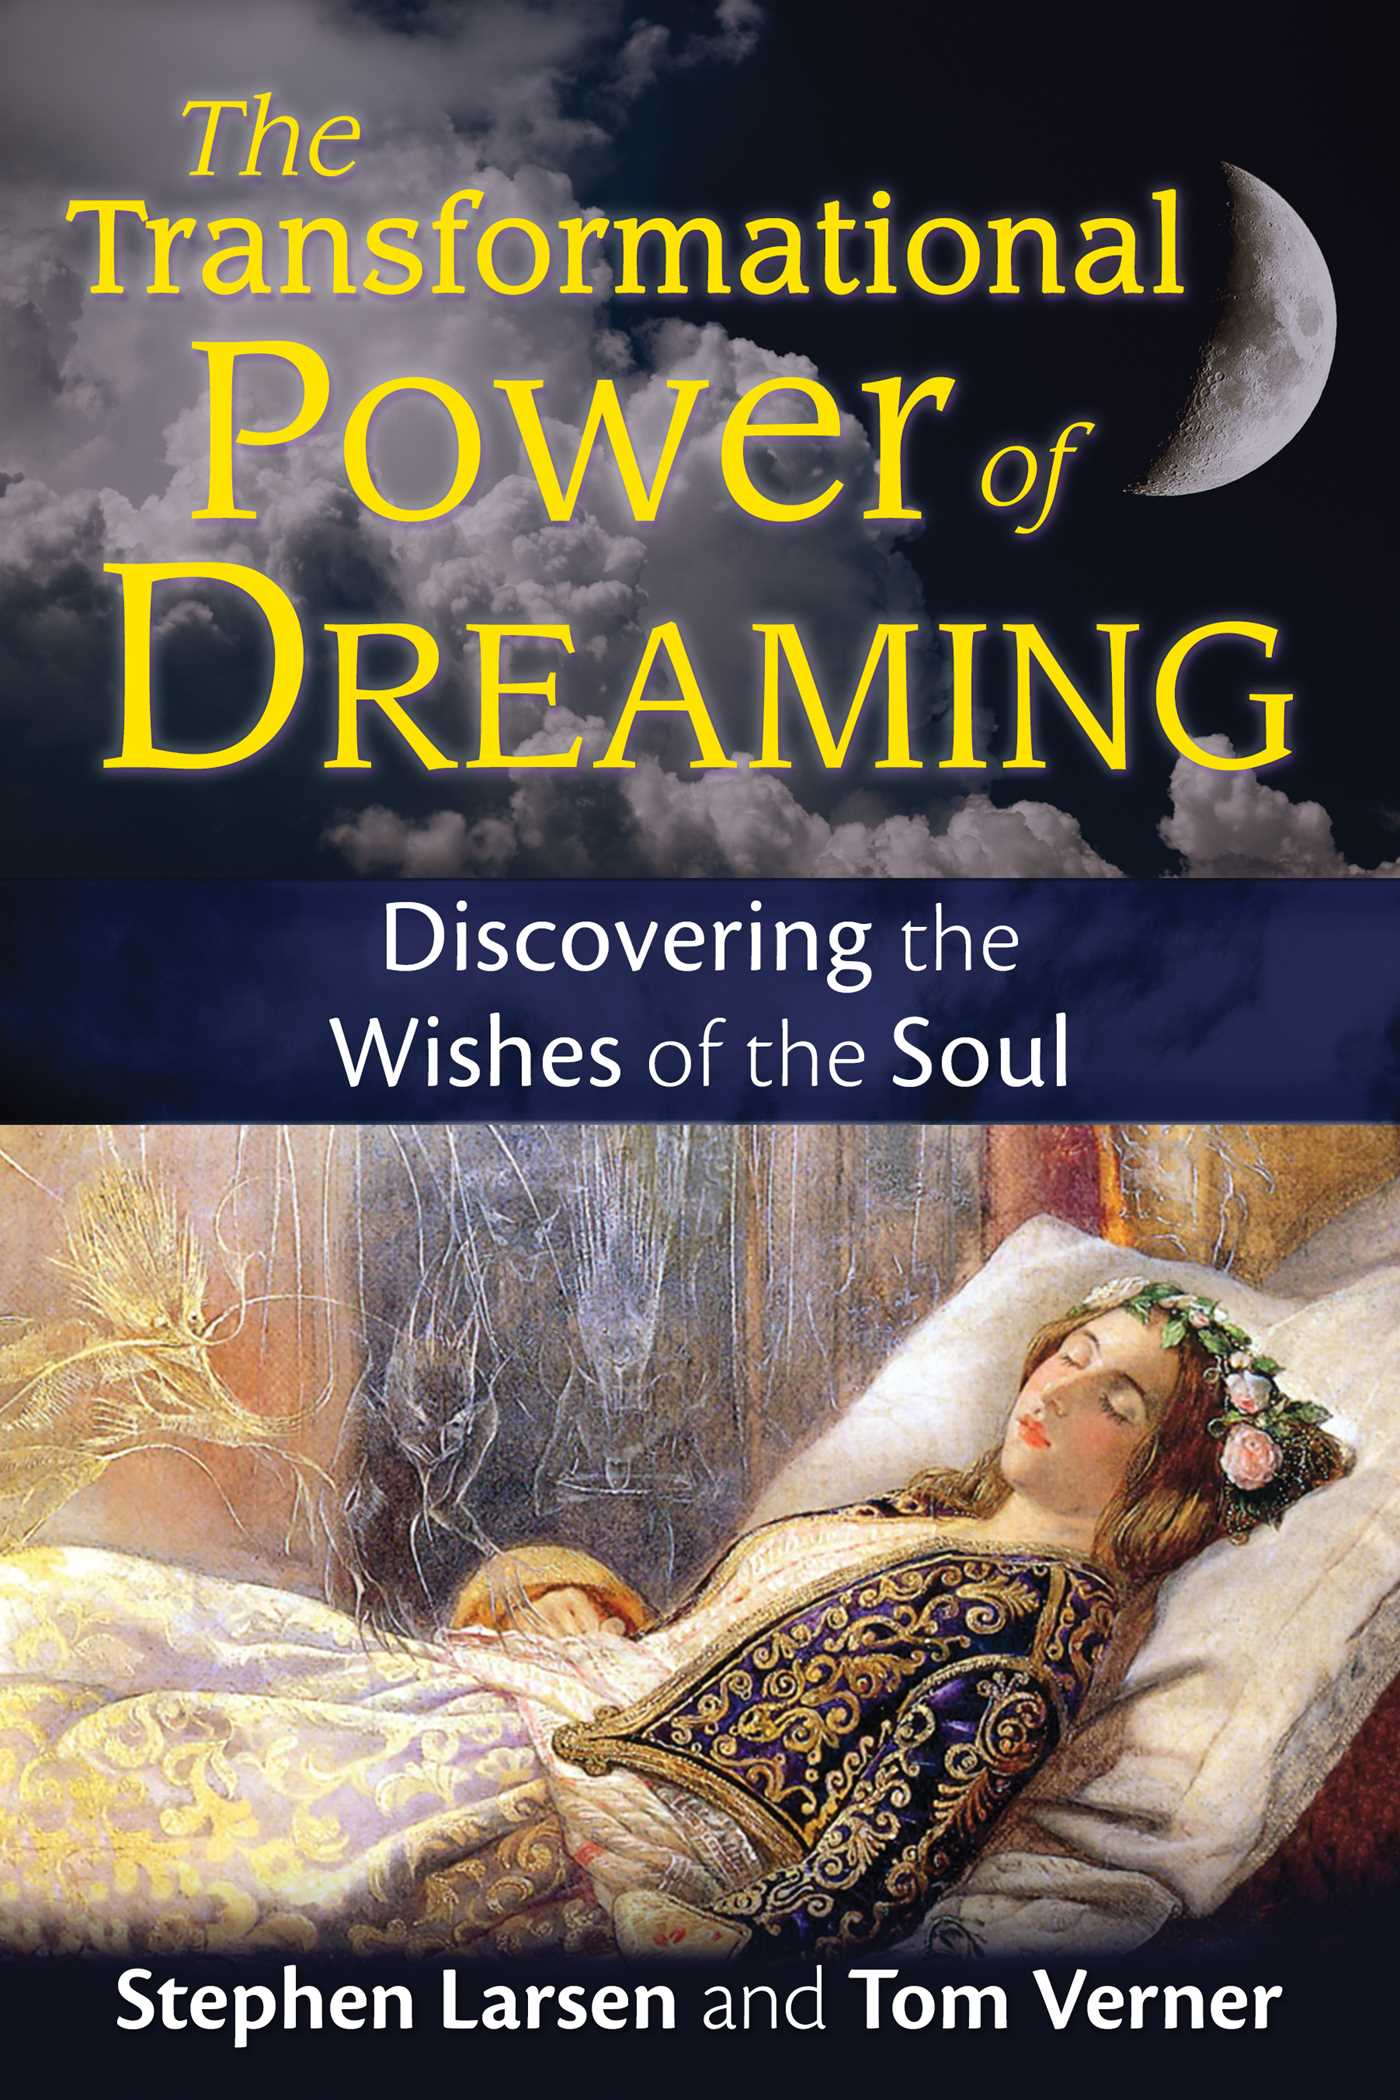 The transformational power of dreaming 9781620555149 hr